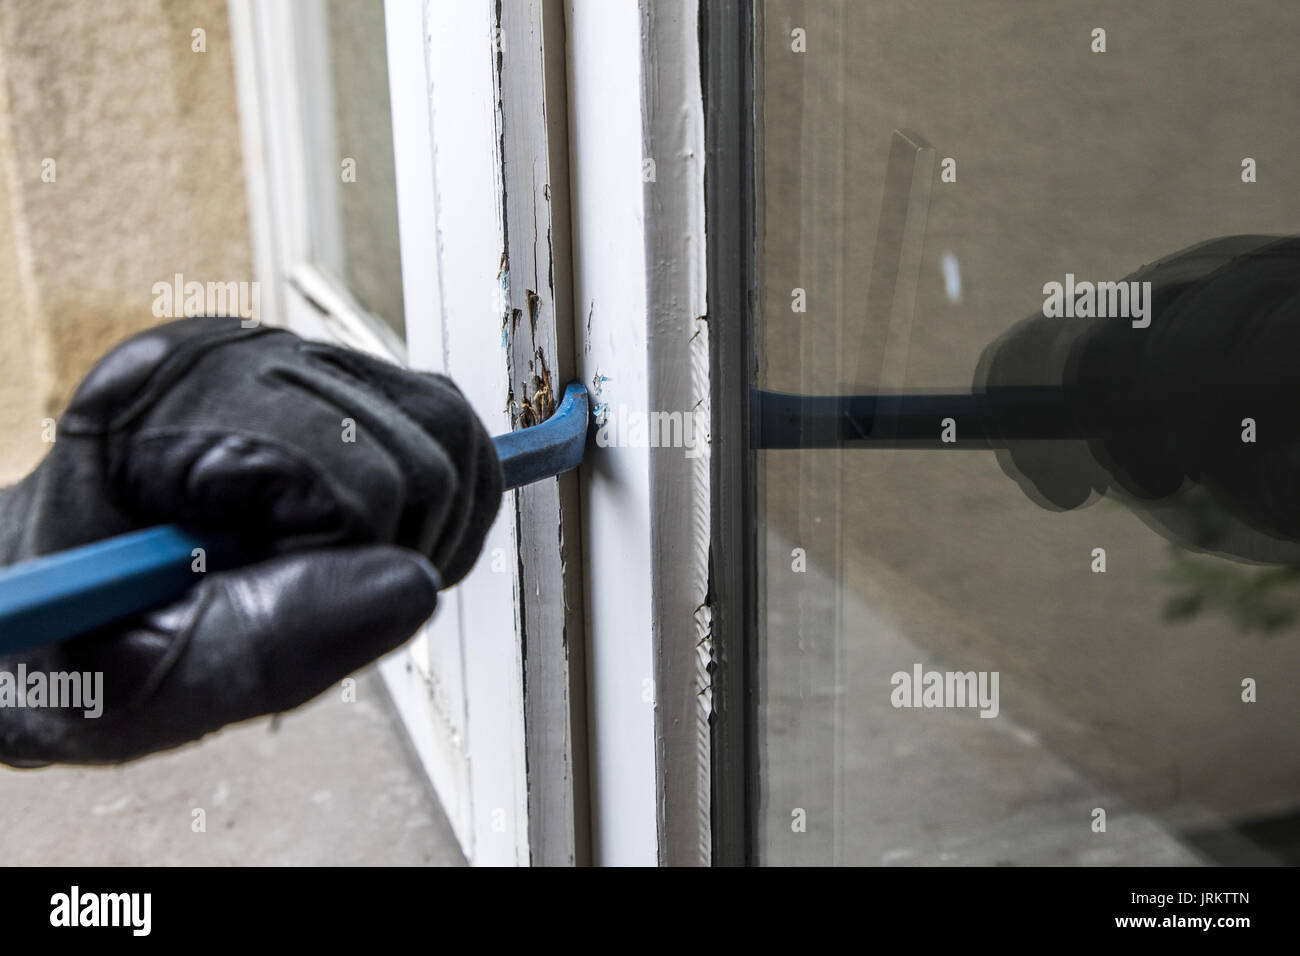 Symbol image, Apartment burglary,  burglar tries to break into an apartment, breaking up a window with tool, - Stock Image